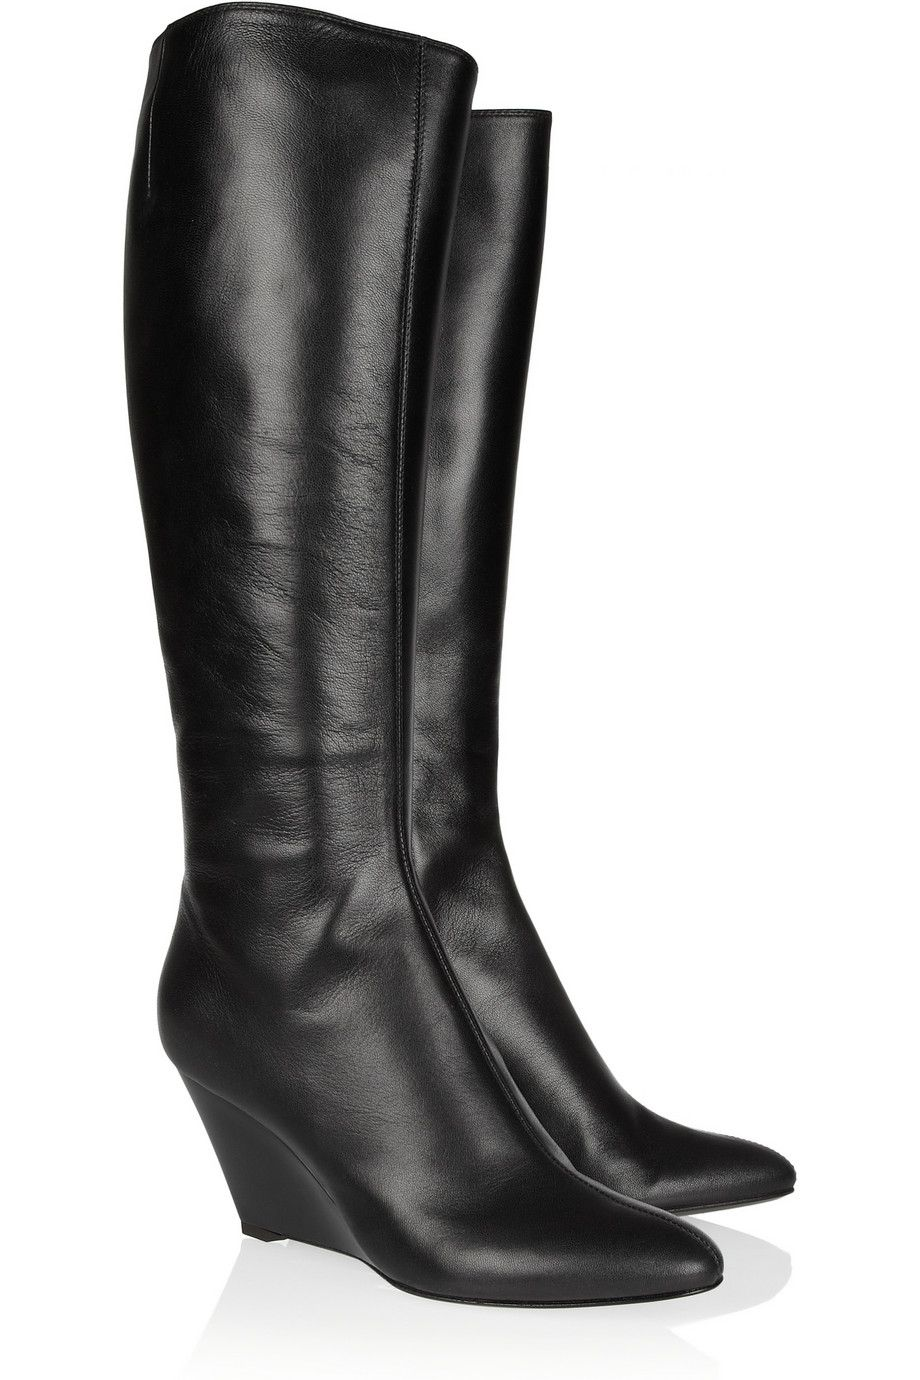 41b3ea50819 The perfect everyday boot. Leather wedge knee boots by Giuseppe Zanotti.   FashionMath